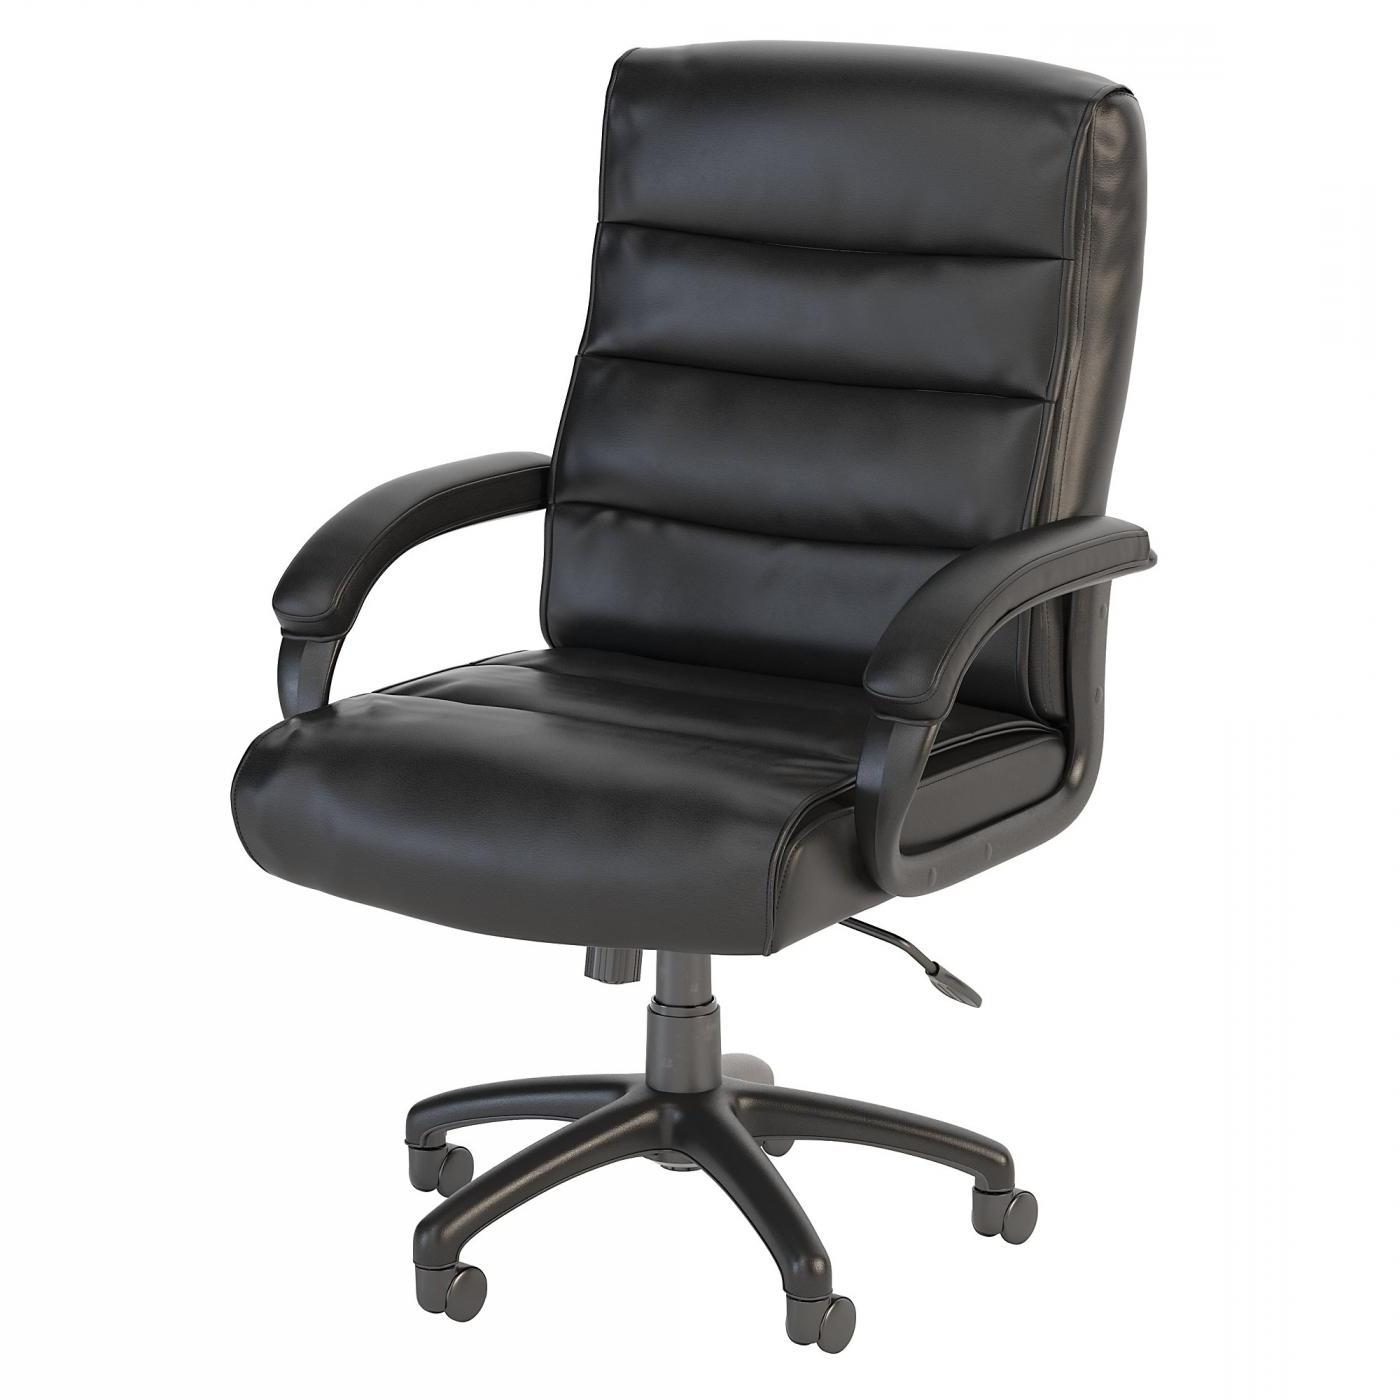 <font color=#c60><b>BUSH BUSINESS FURNITURE SOFT SENSE MID BACK LEATHER EXECUTIVE OFFICE CHAIR. FREE SHIPPING</font></b> </font></b></font></b>